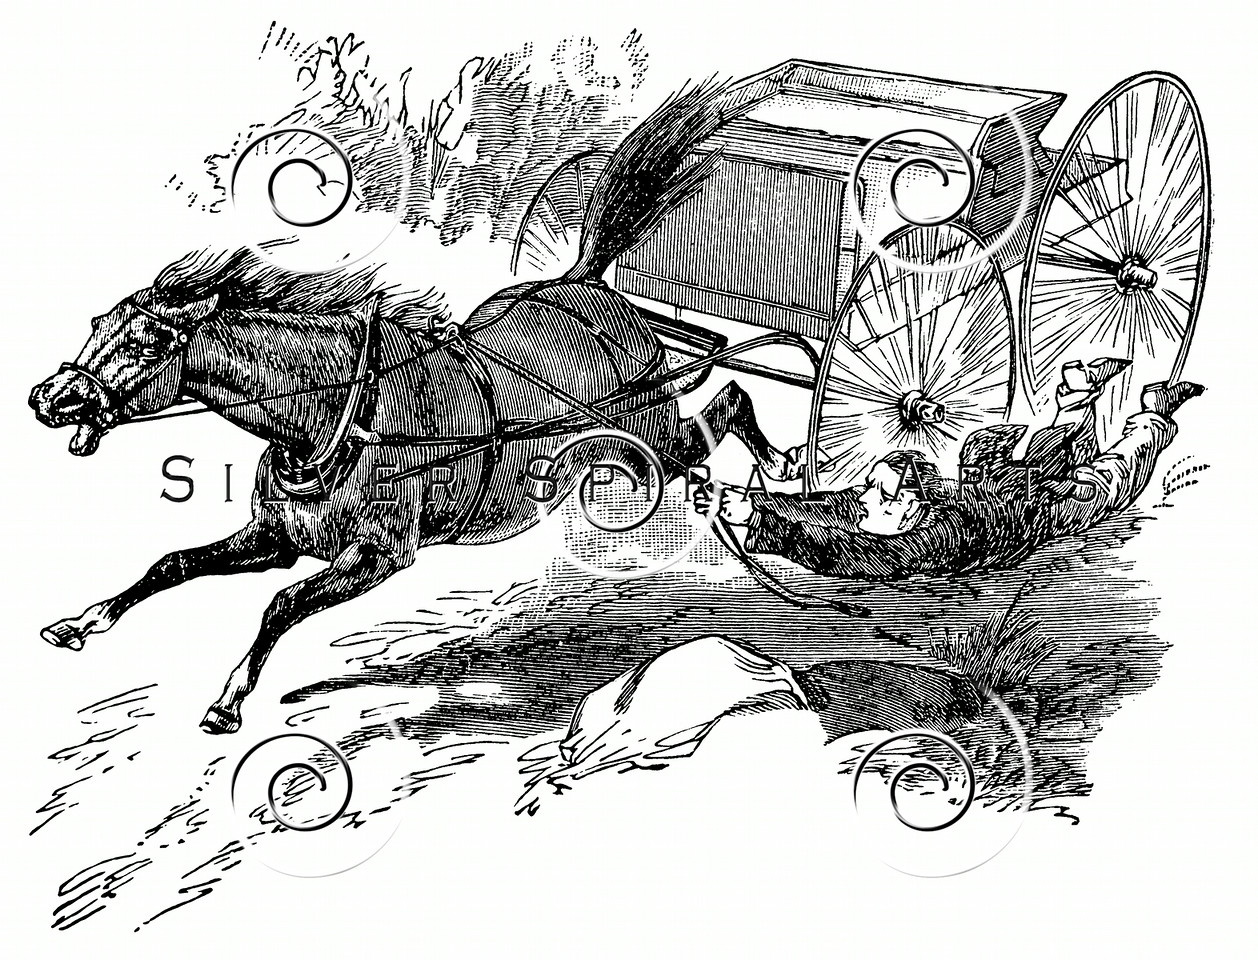 Vintage Horse Wagon Cart Illustration - 1800s Horses Images.